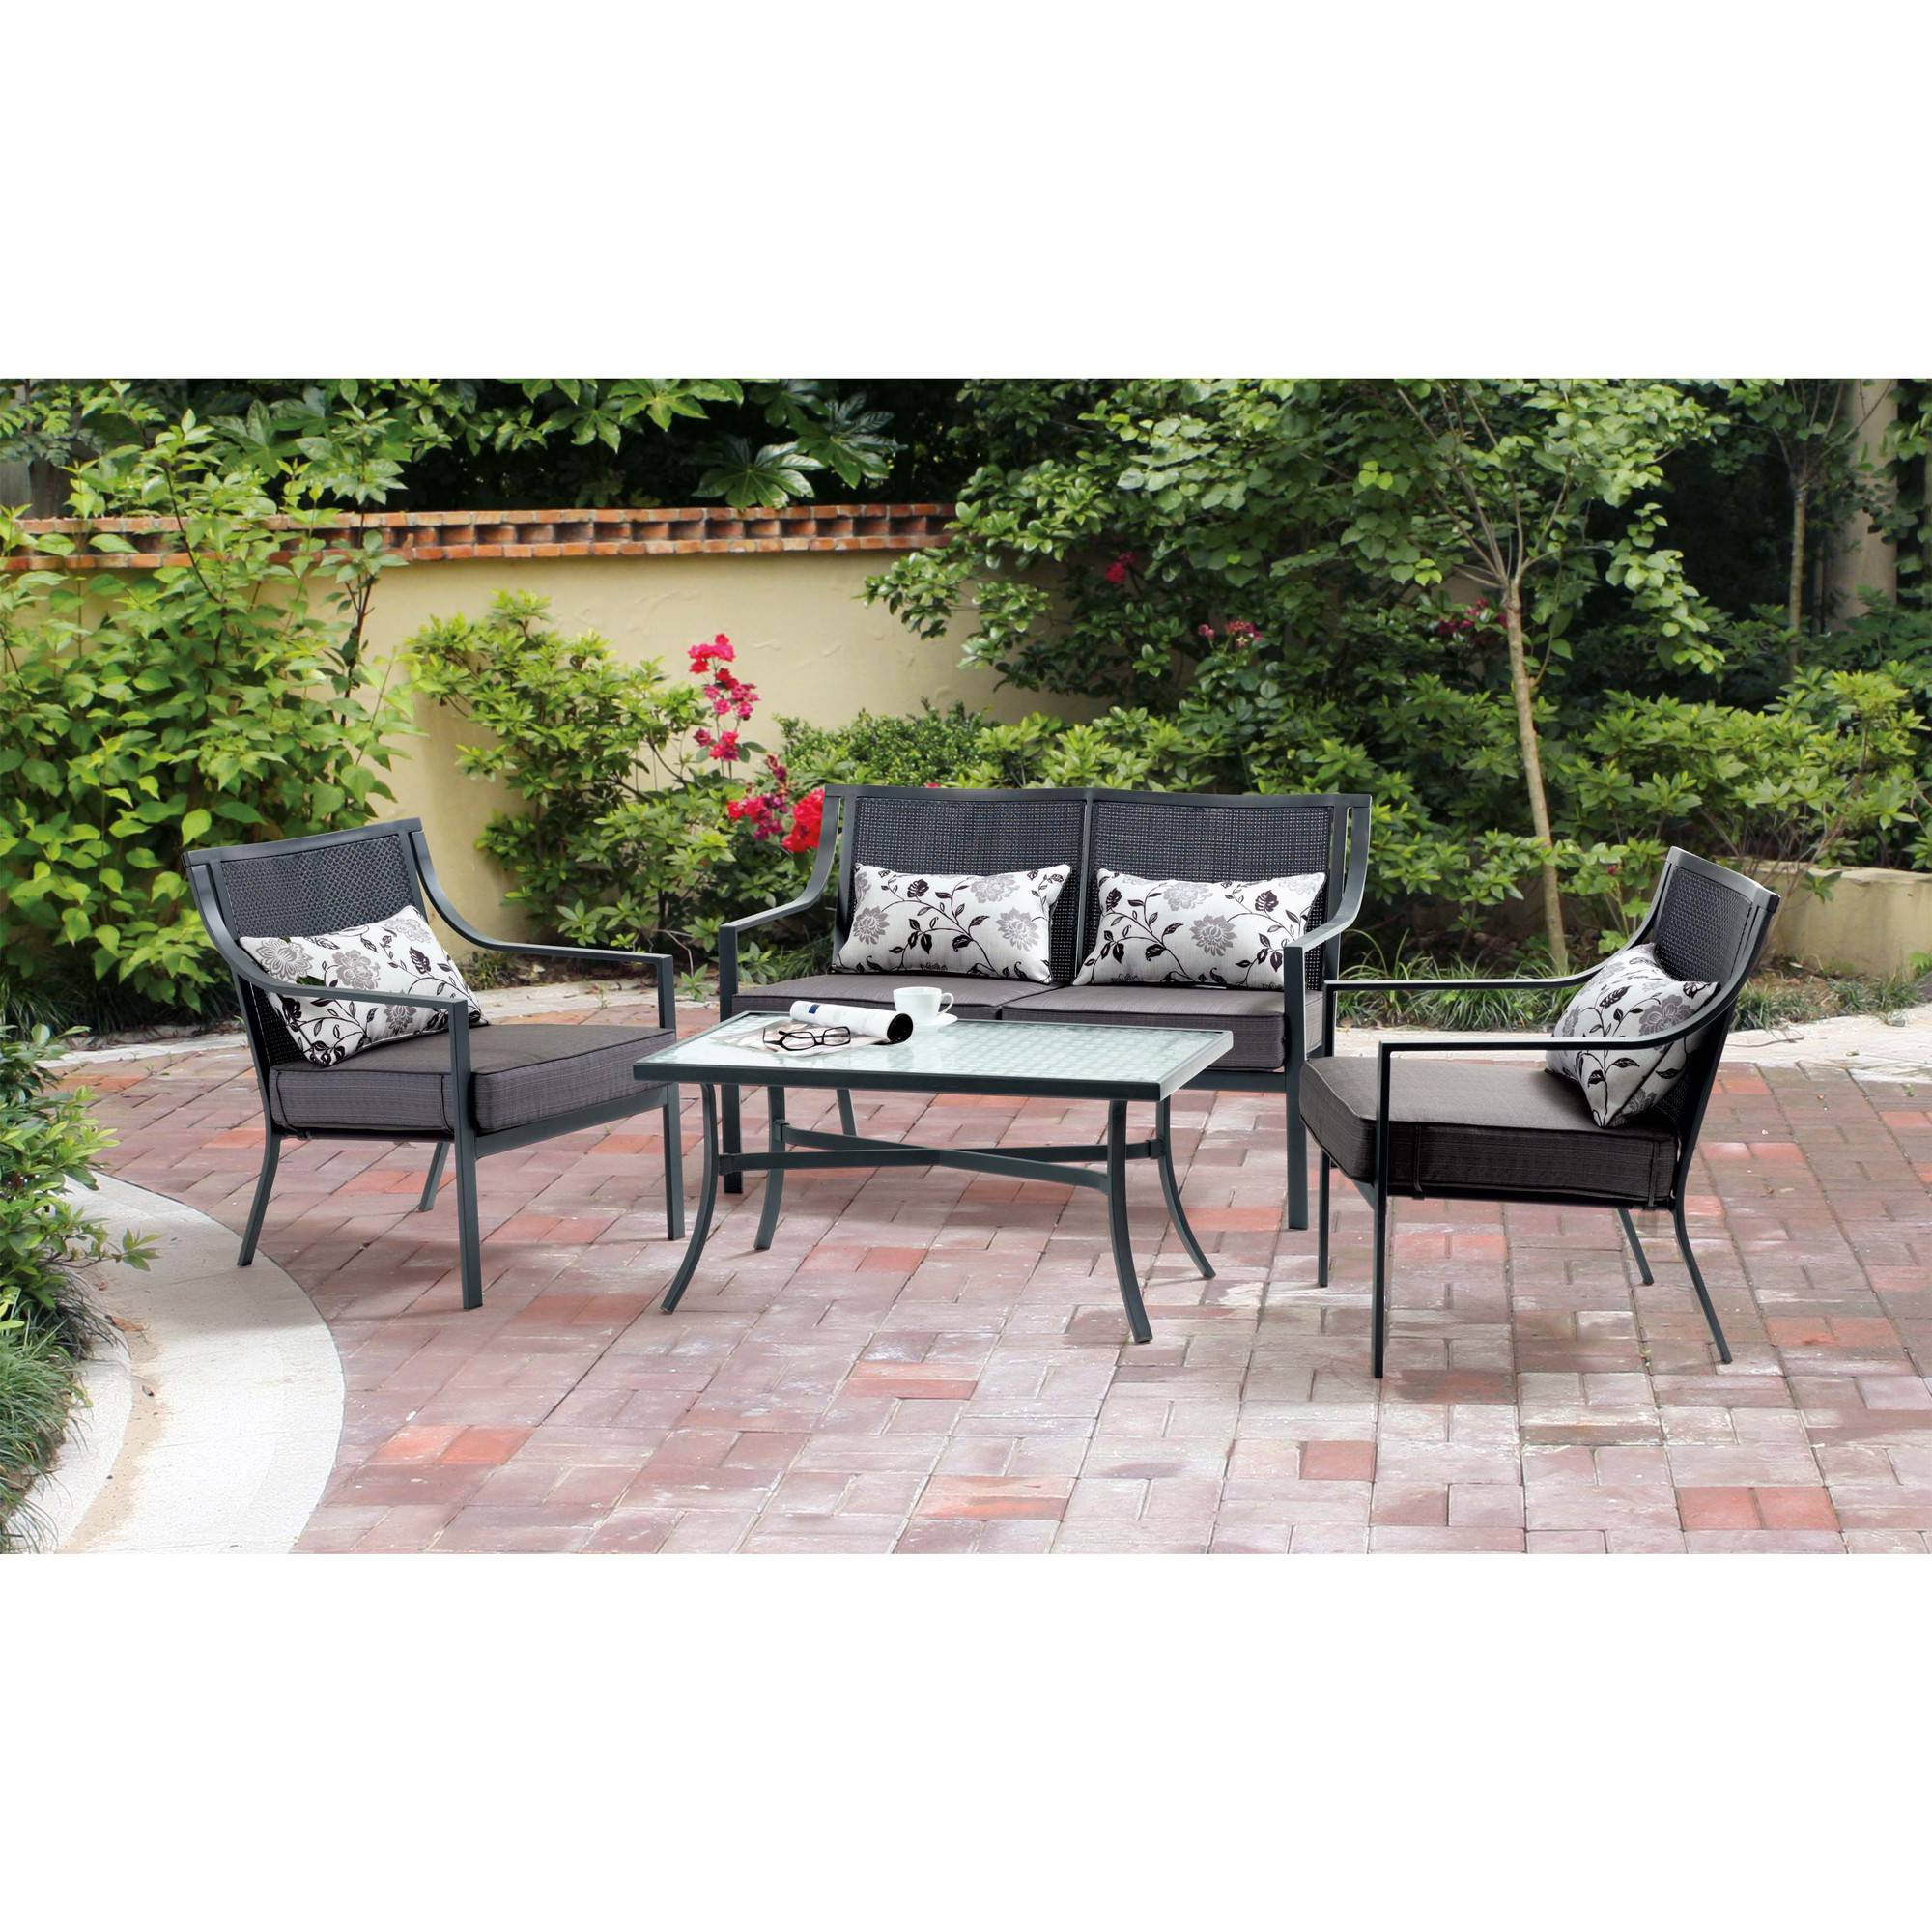 Mainstays Alexandra Square 4-Piece Patio Conversation Set, Grey with Leaves, Seats 4 by Patio Sets